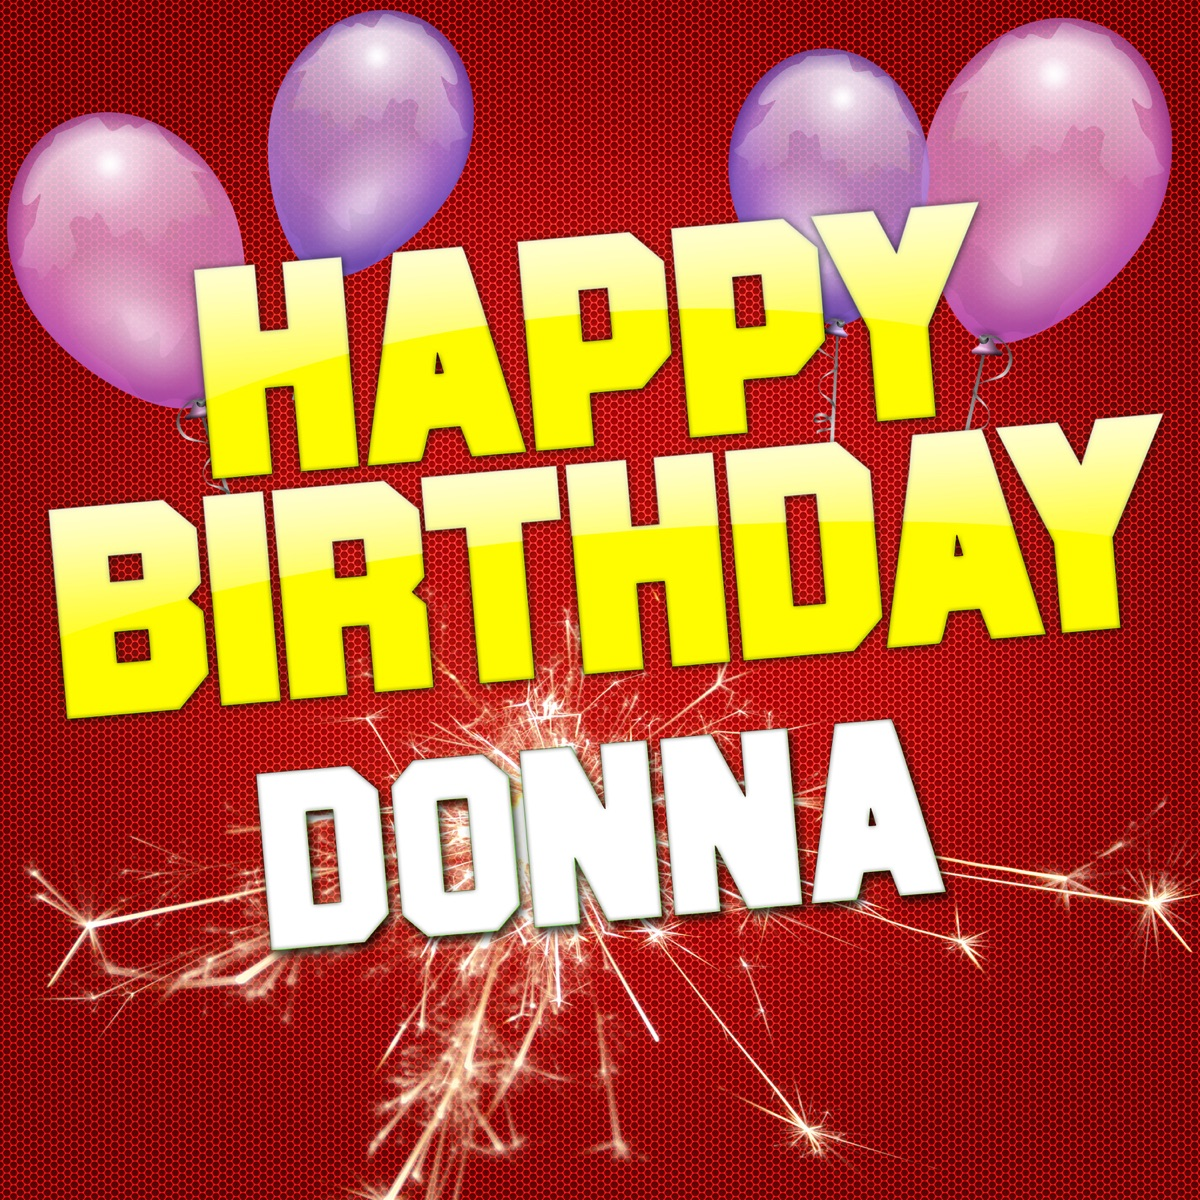 Happy Birthday Donna EP Album Cover by White Cats Music